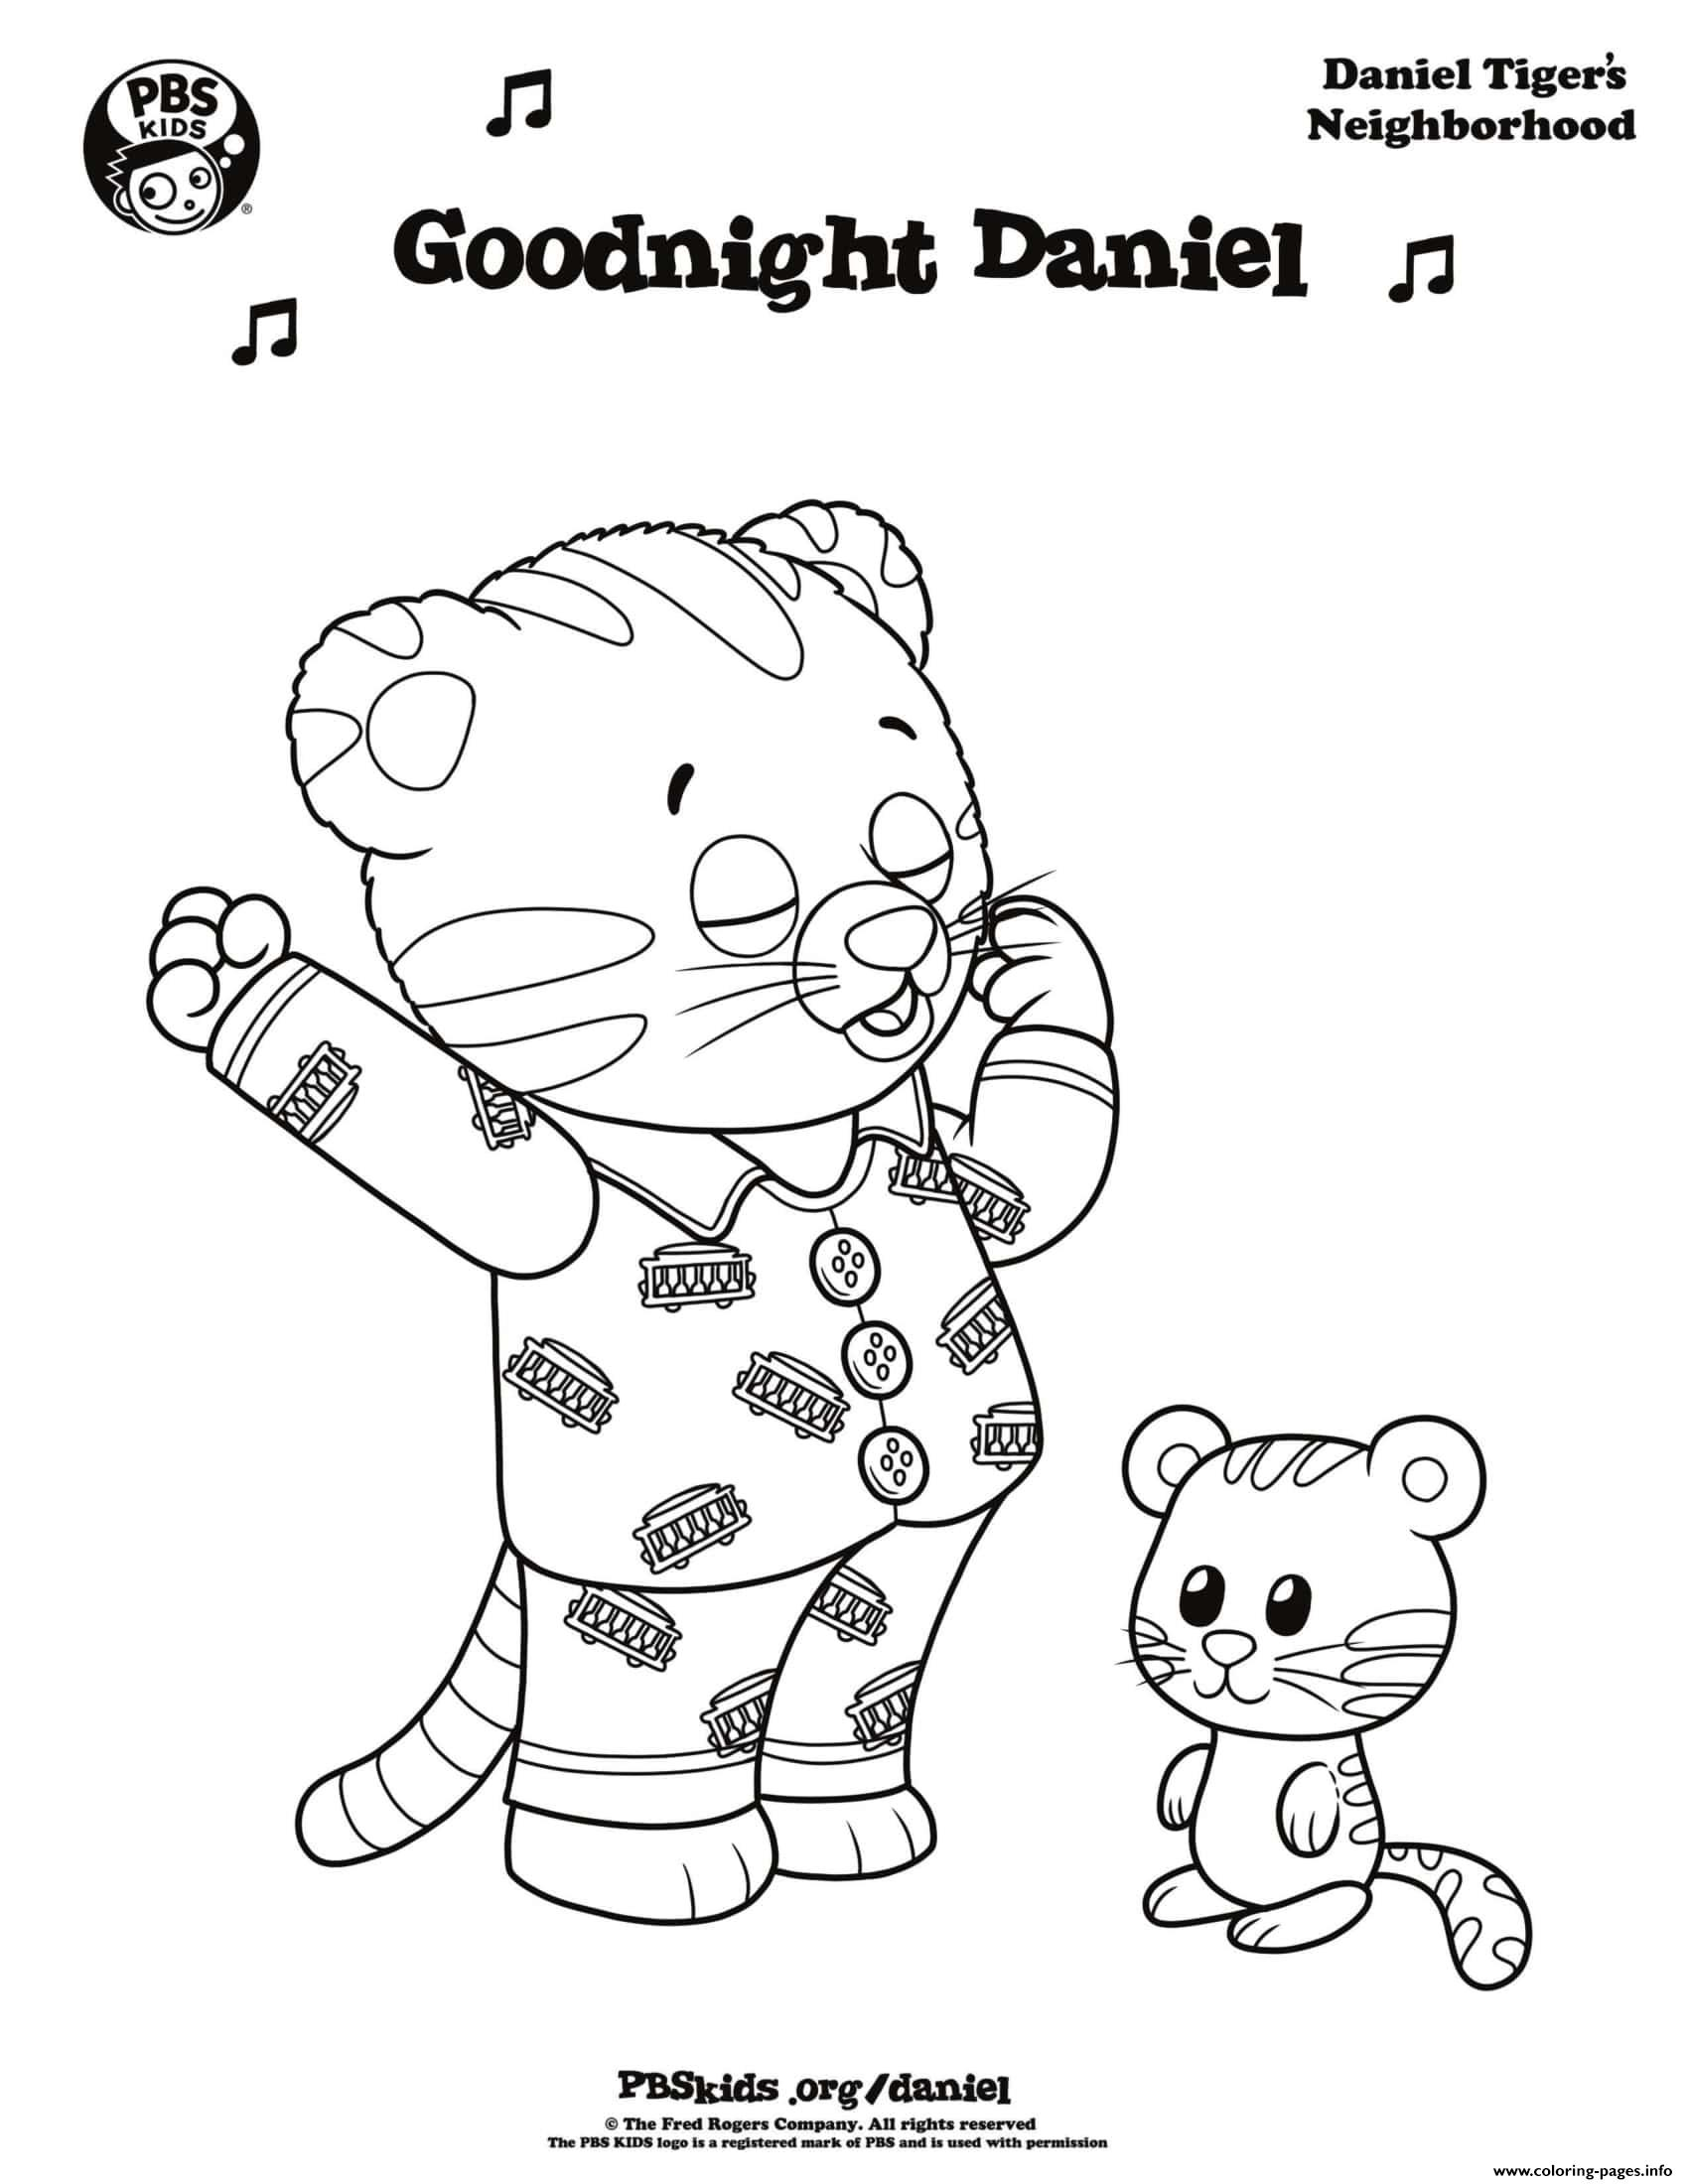 Haunted neighborhood coloring pages - Hellokids.com | 2200x1700